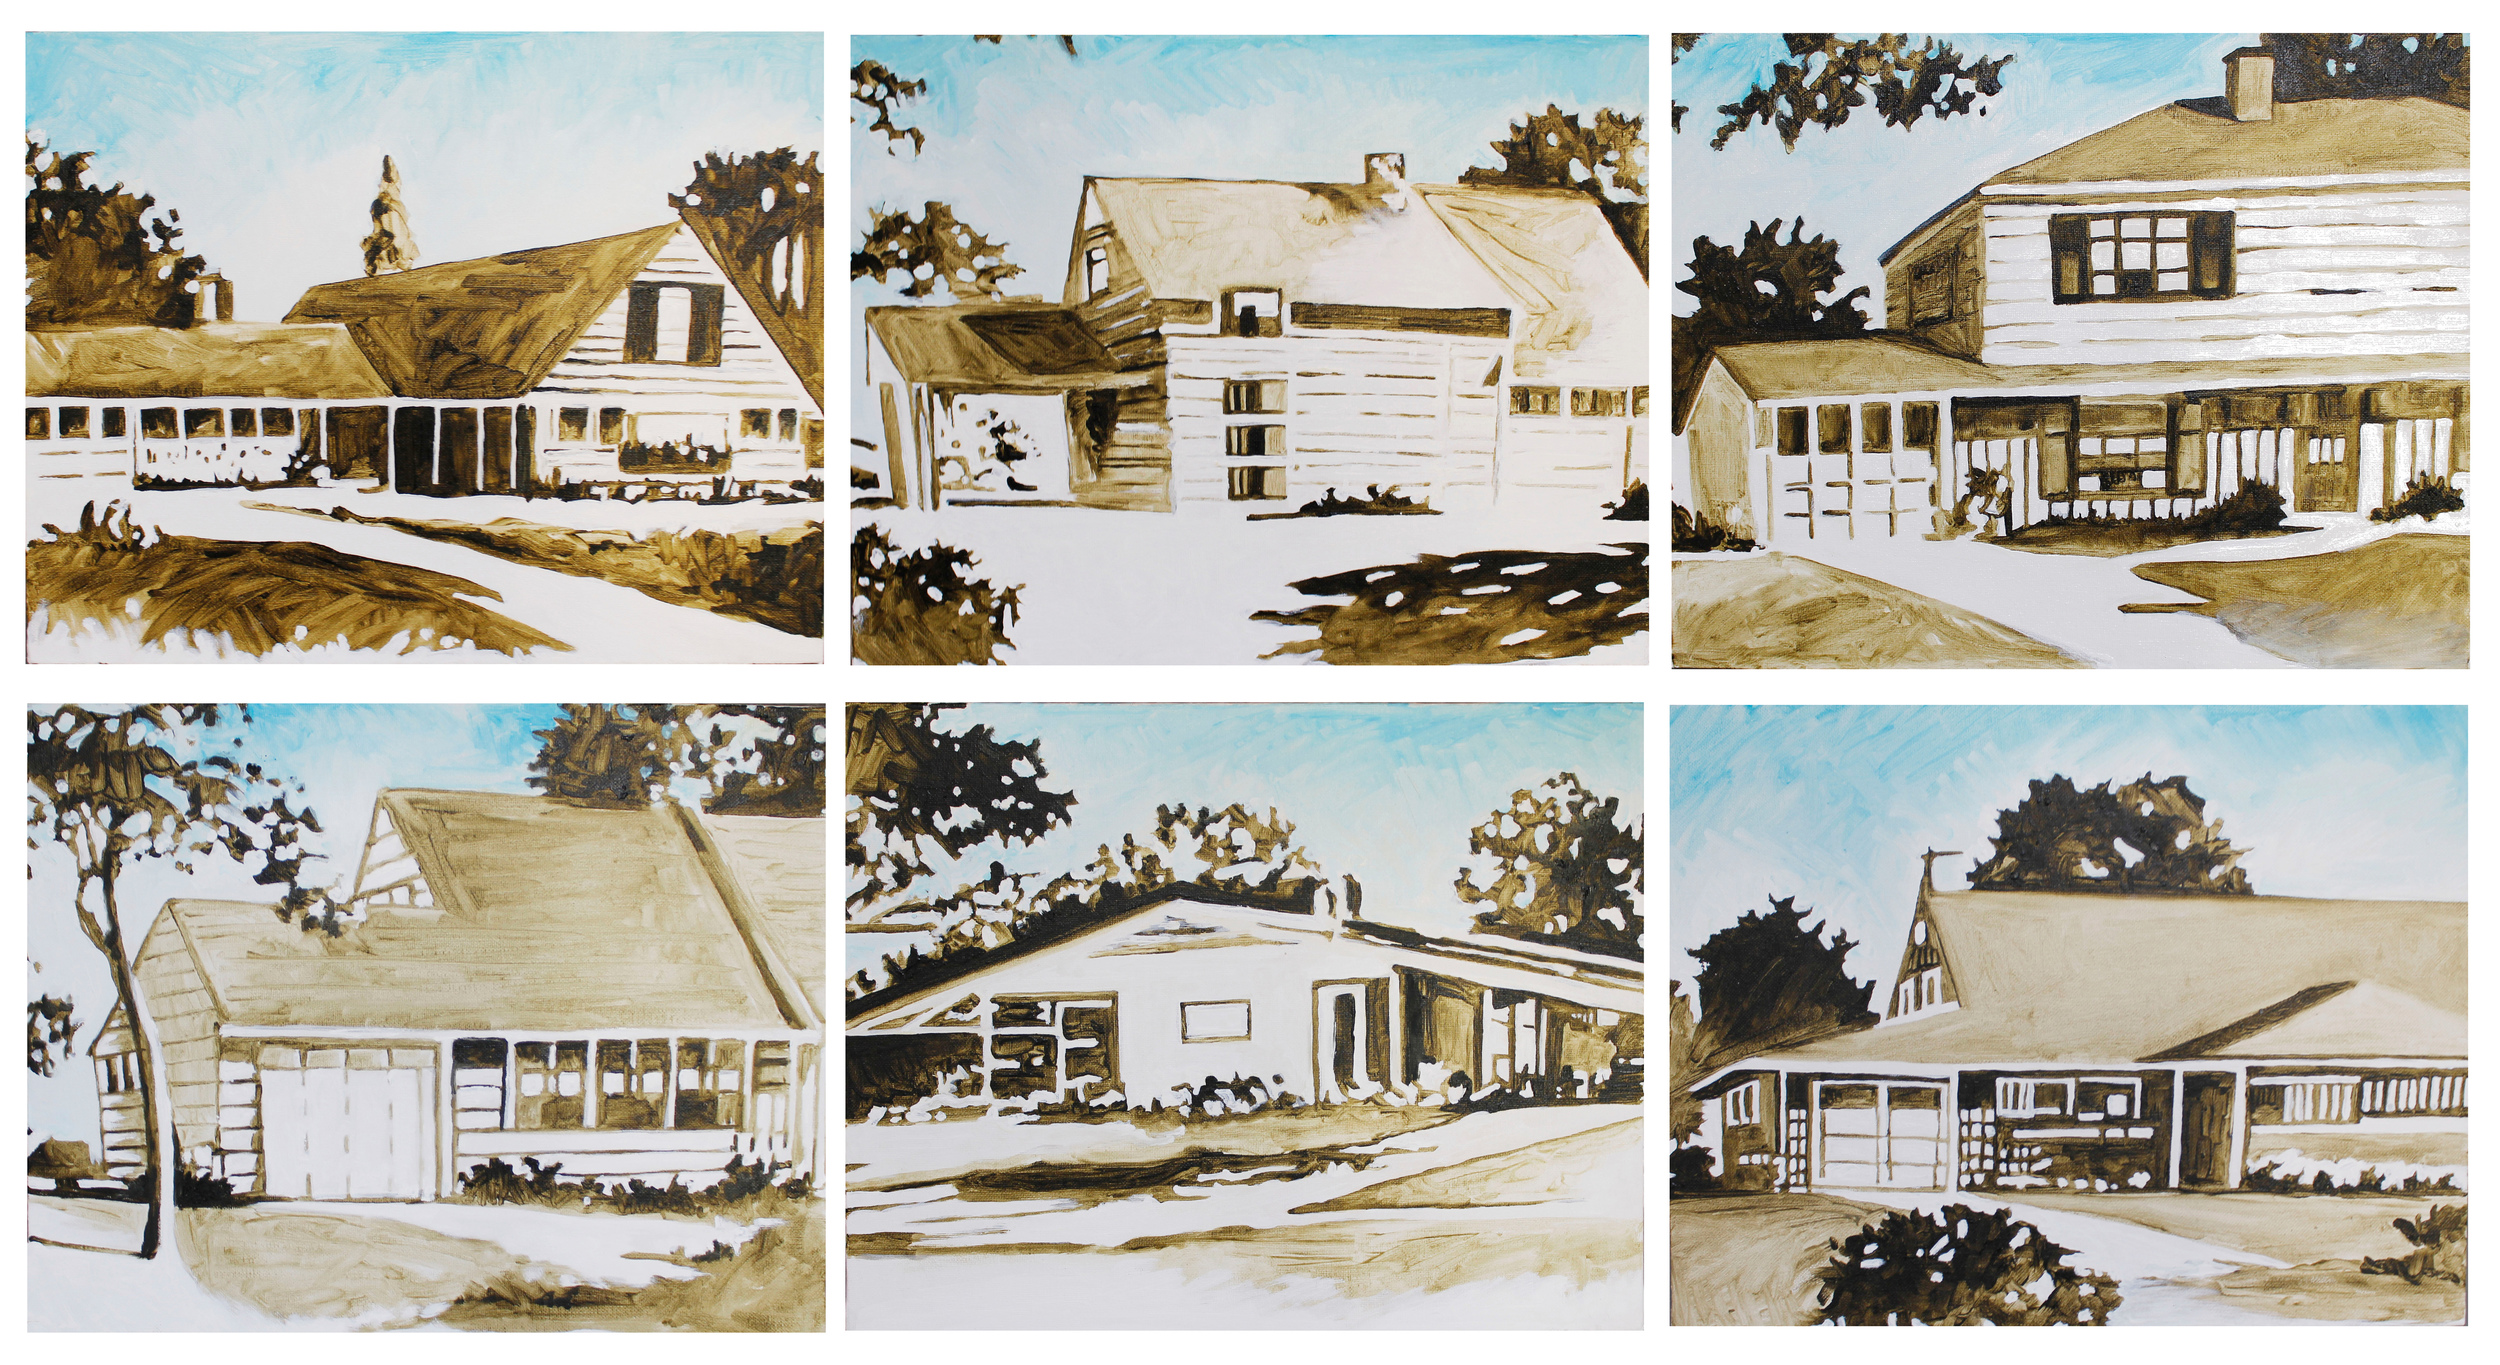 The Cape Cod, The Country Club, The Rancher, The Jubilee, The Levittowner and Pennsylvanian, 2013